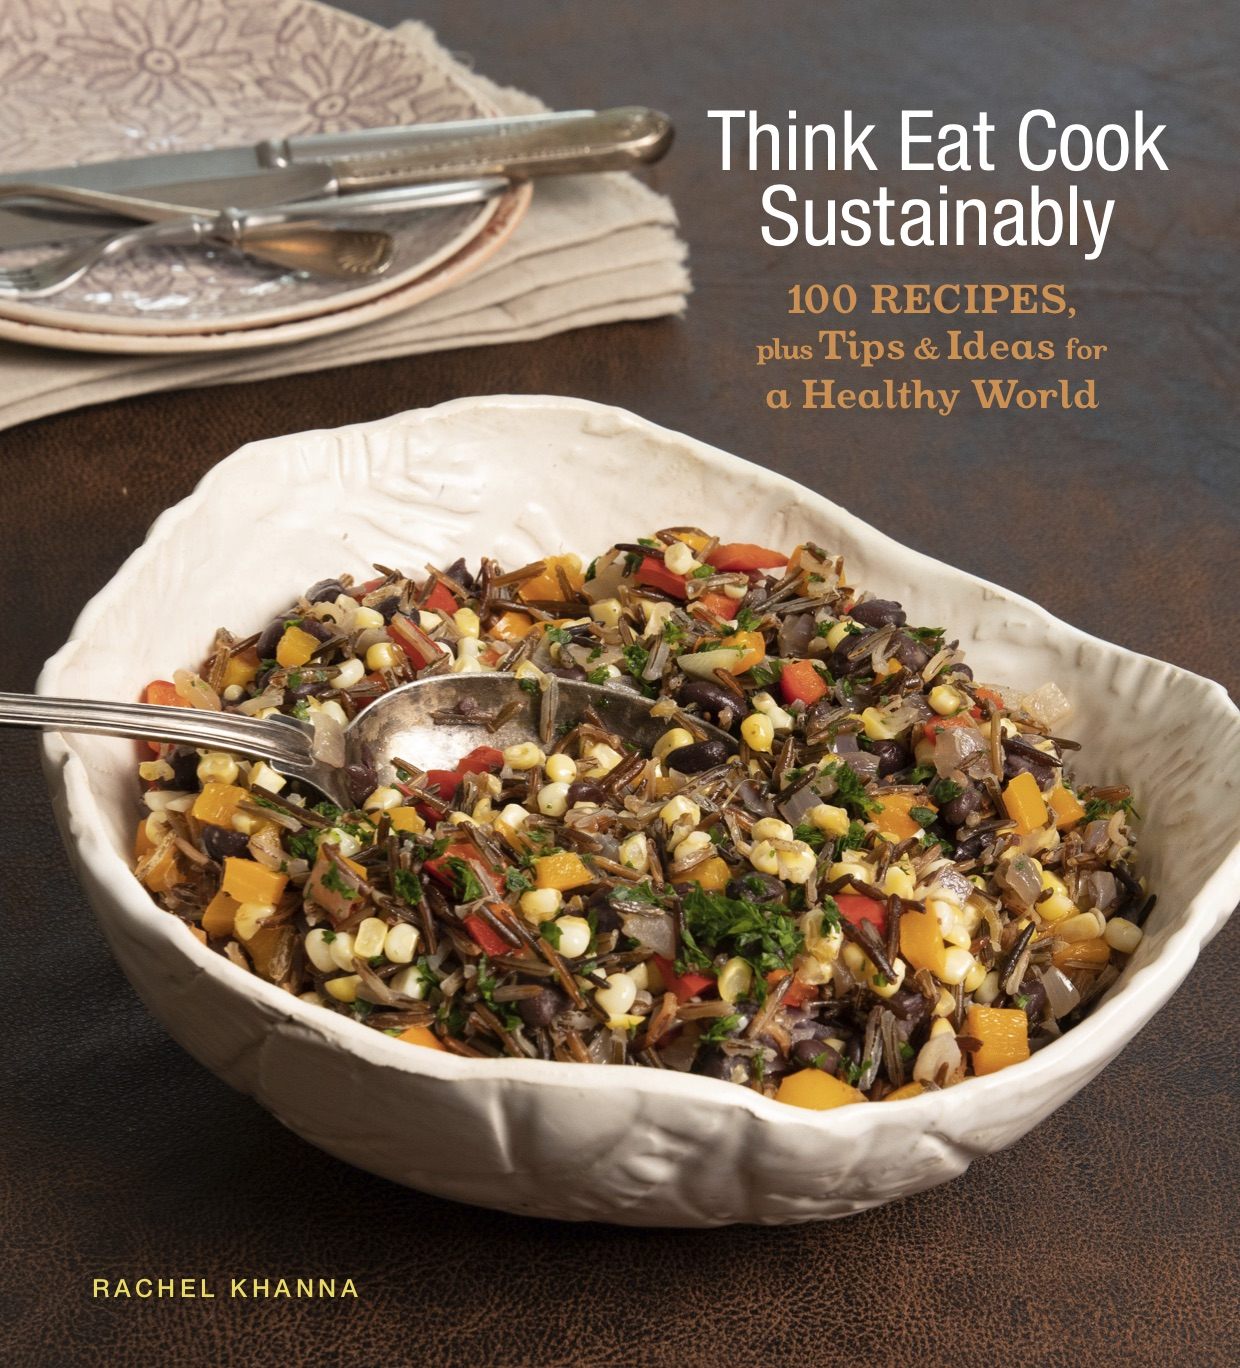 THINK, EAT, COOK SUSTAINABLY: 100 RECIPES, PLUS TIPS & IDEAS FOR A HEALTHY WORLD